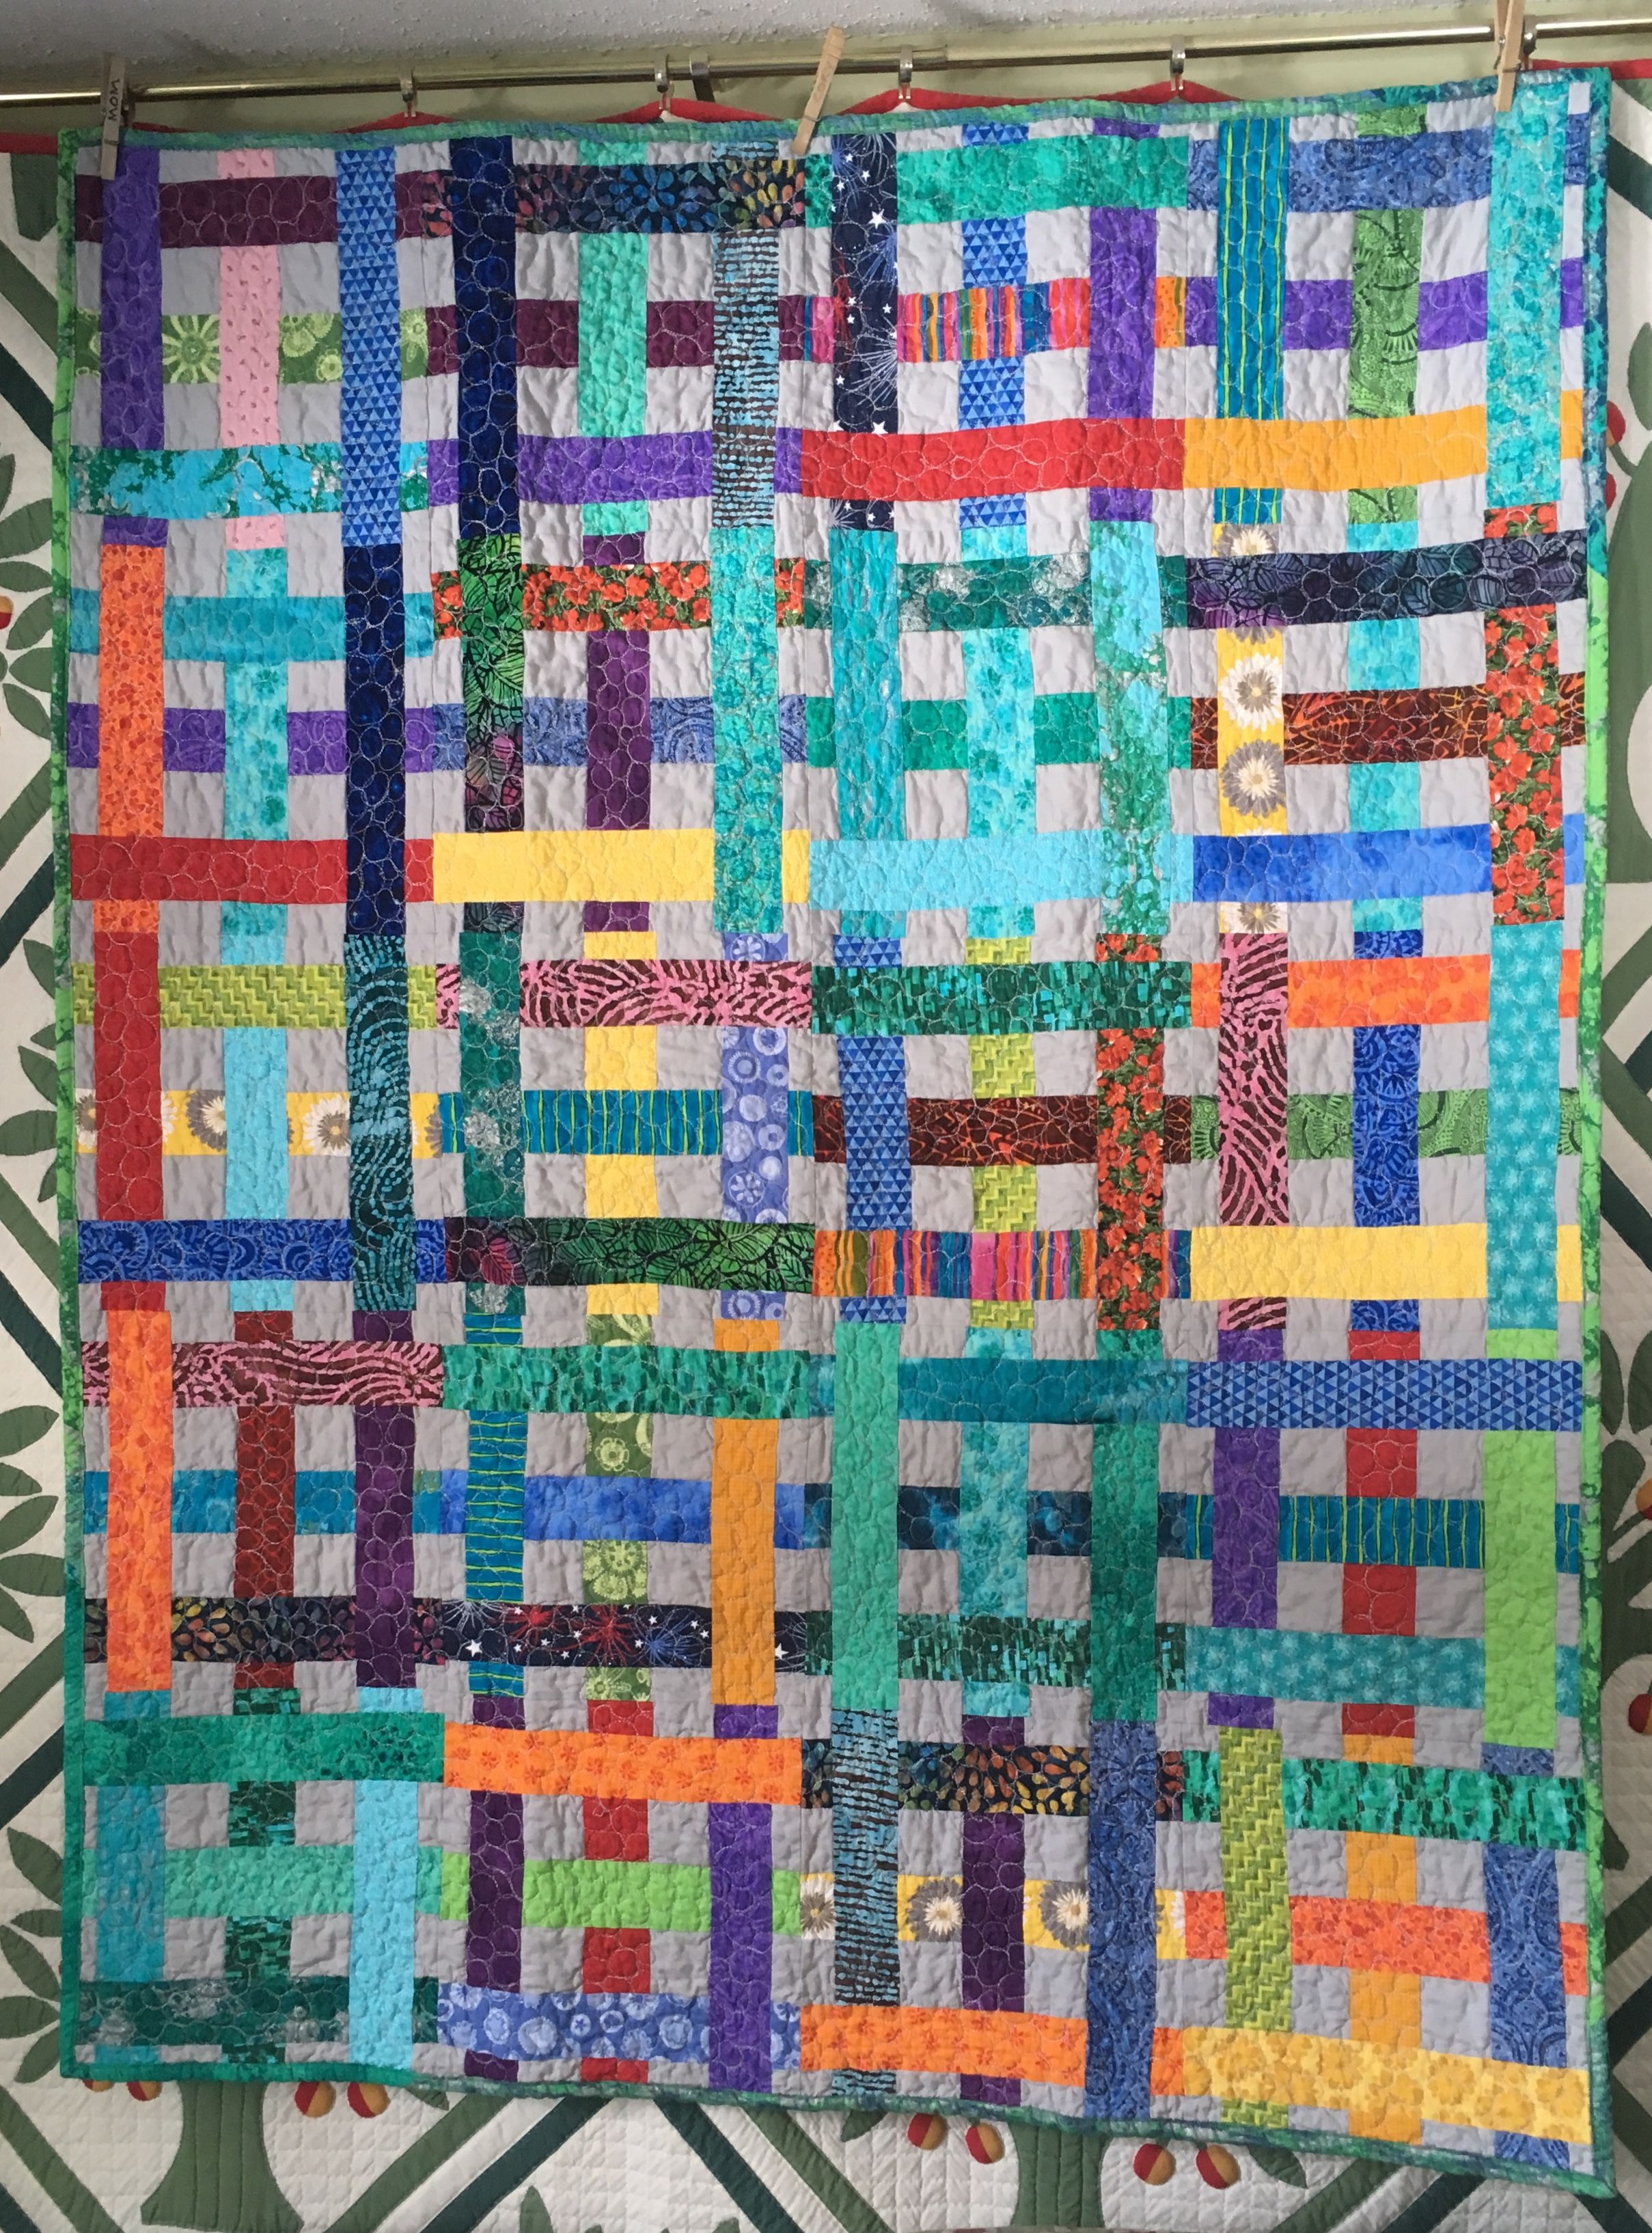 Simply Woven Quilt Pattern By Moda Bakeshop 2018 For Me Quilts Quilt Patterns Woven